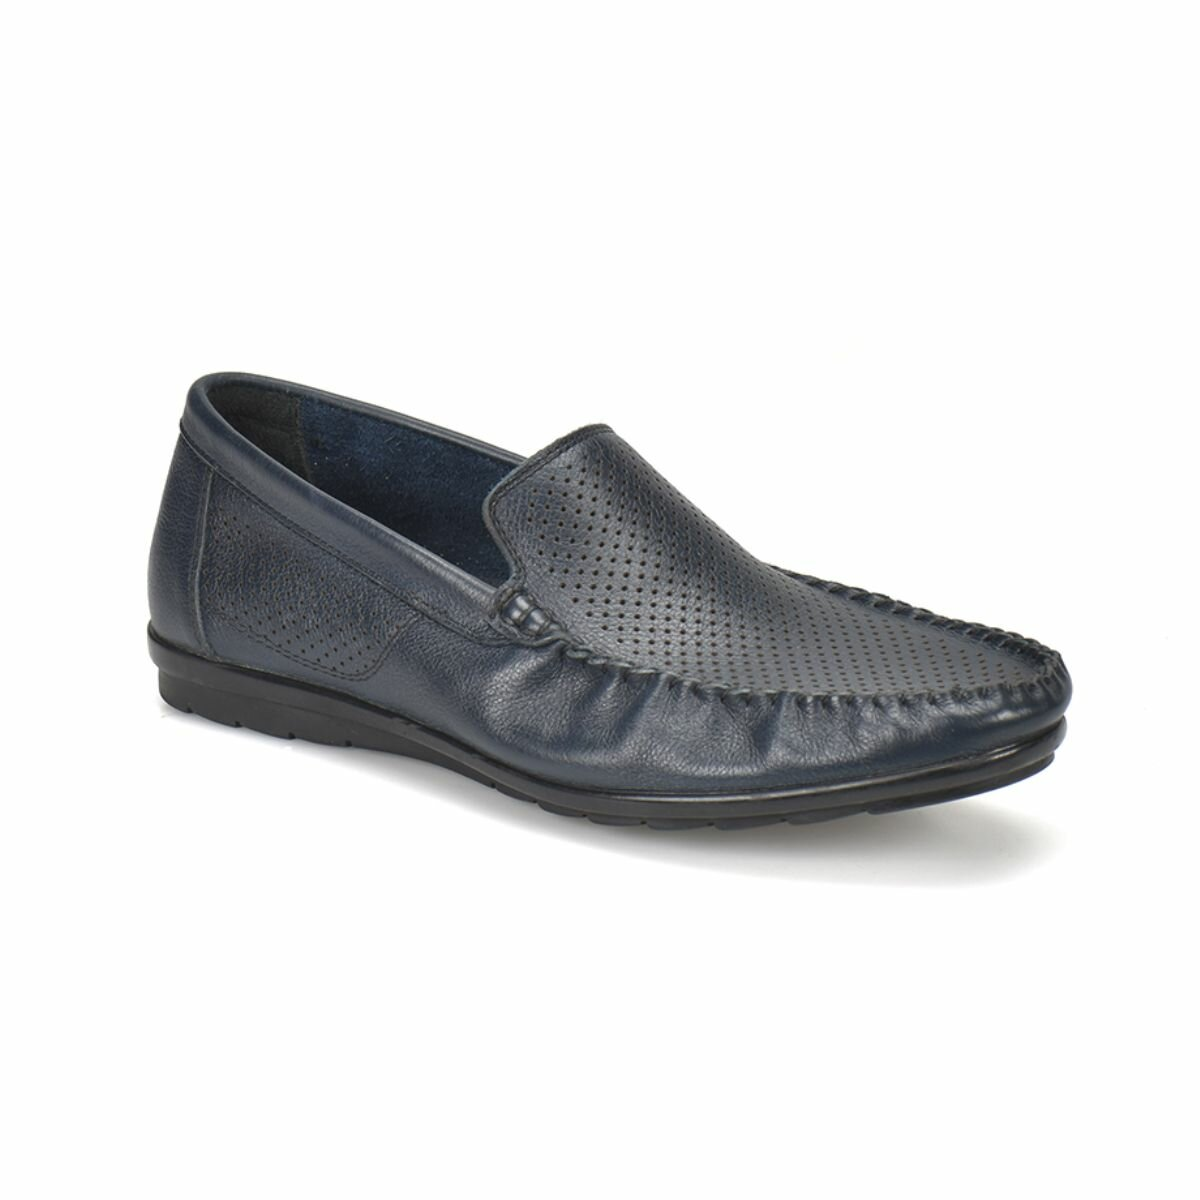 FLO 2251 Navy Blue Men 'S Shoes Oxide